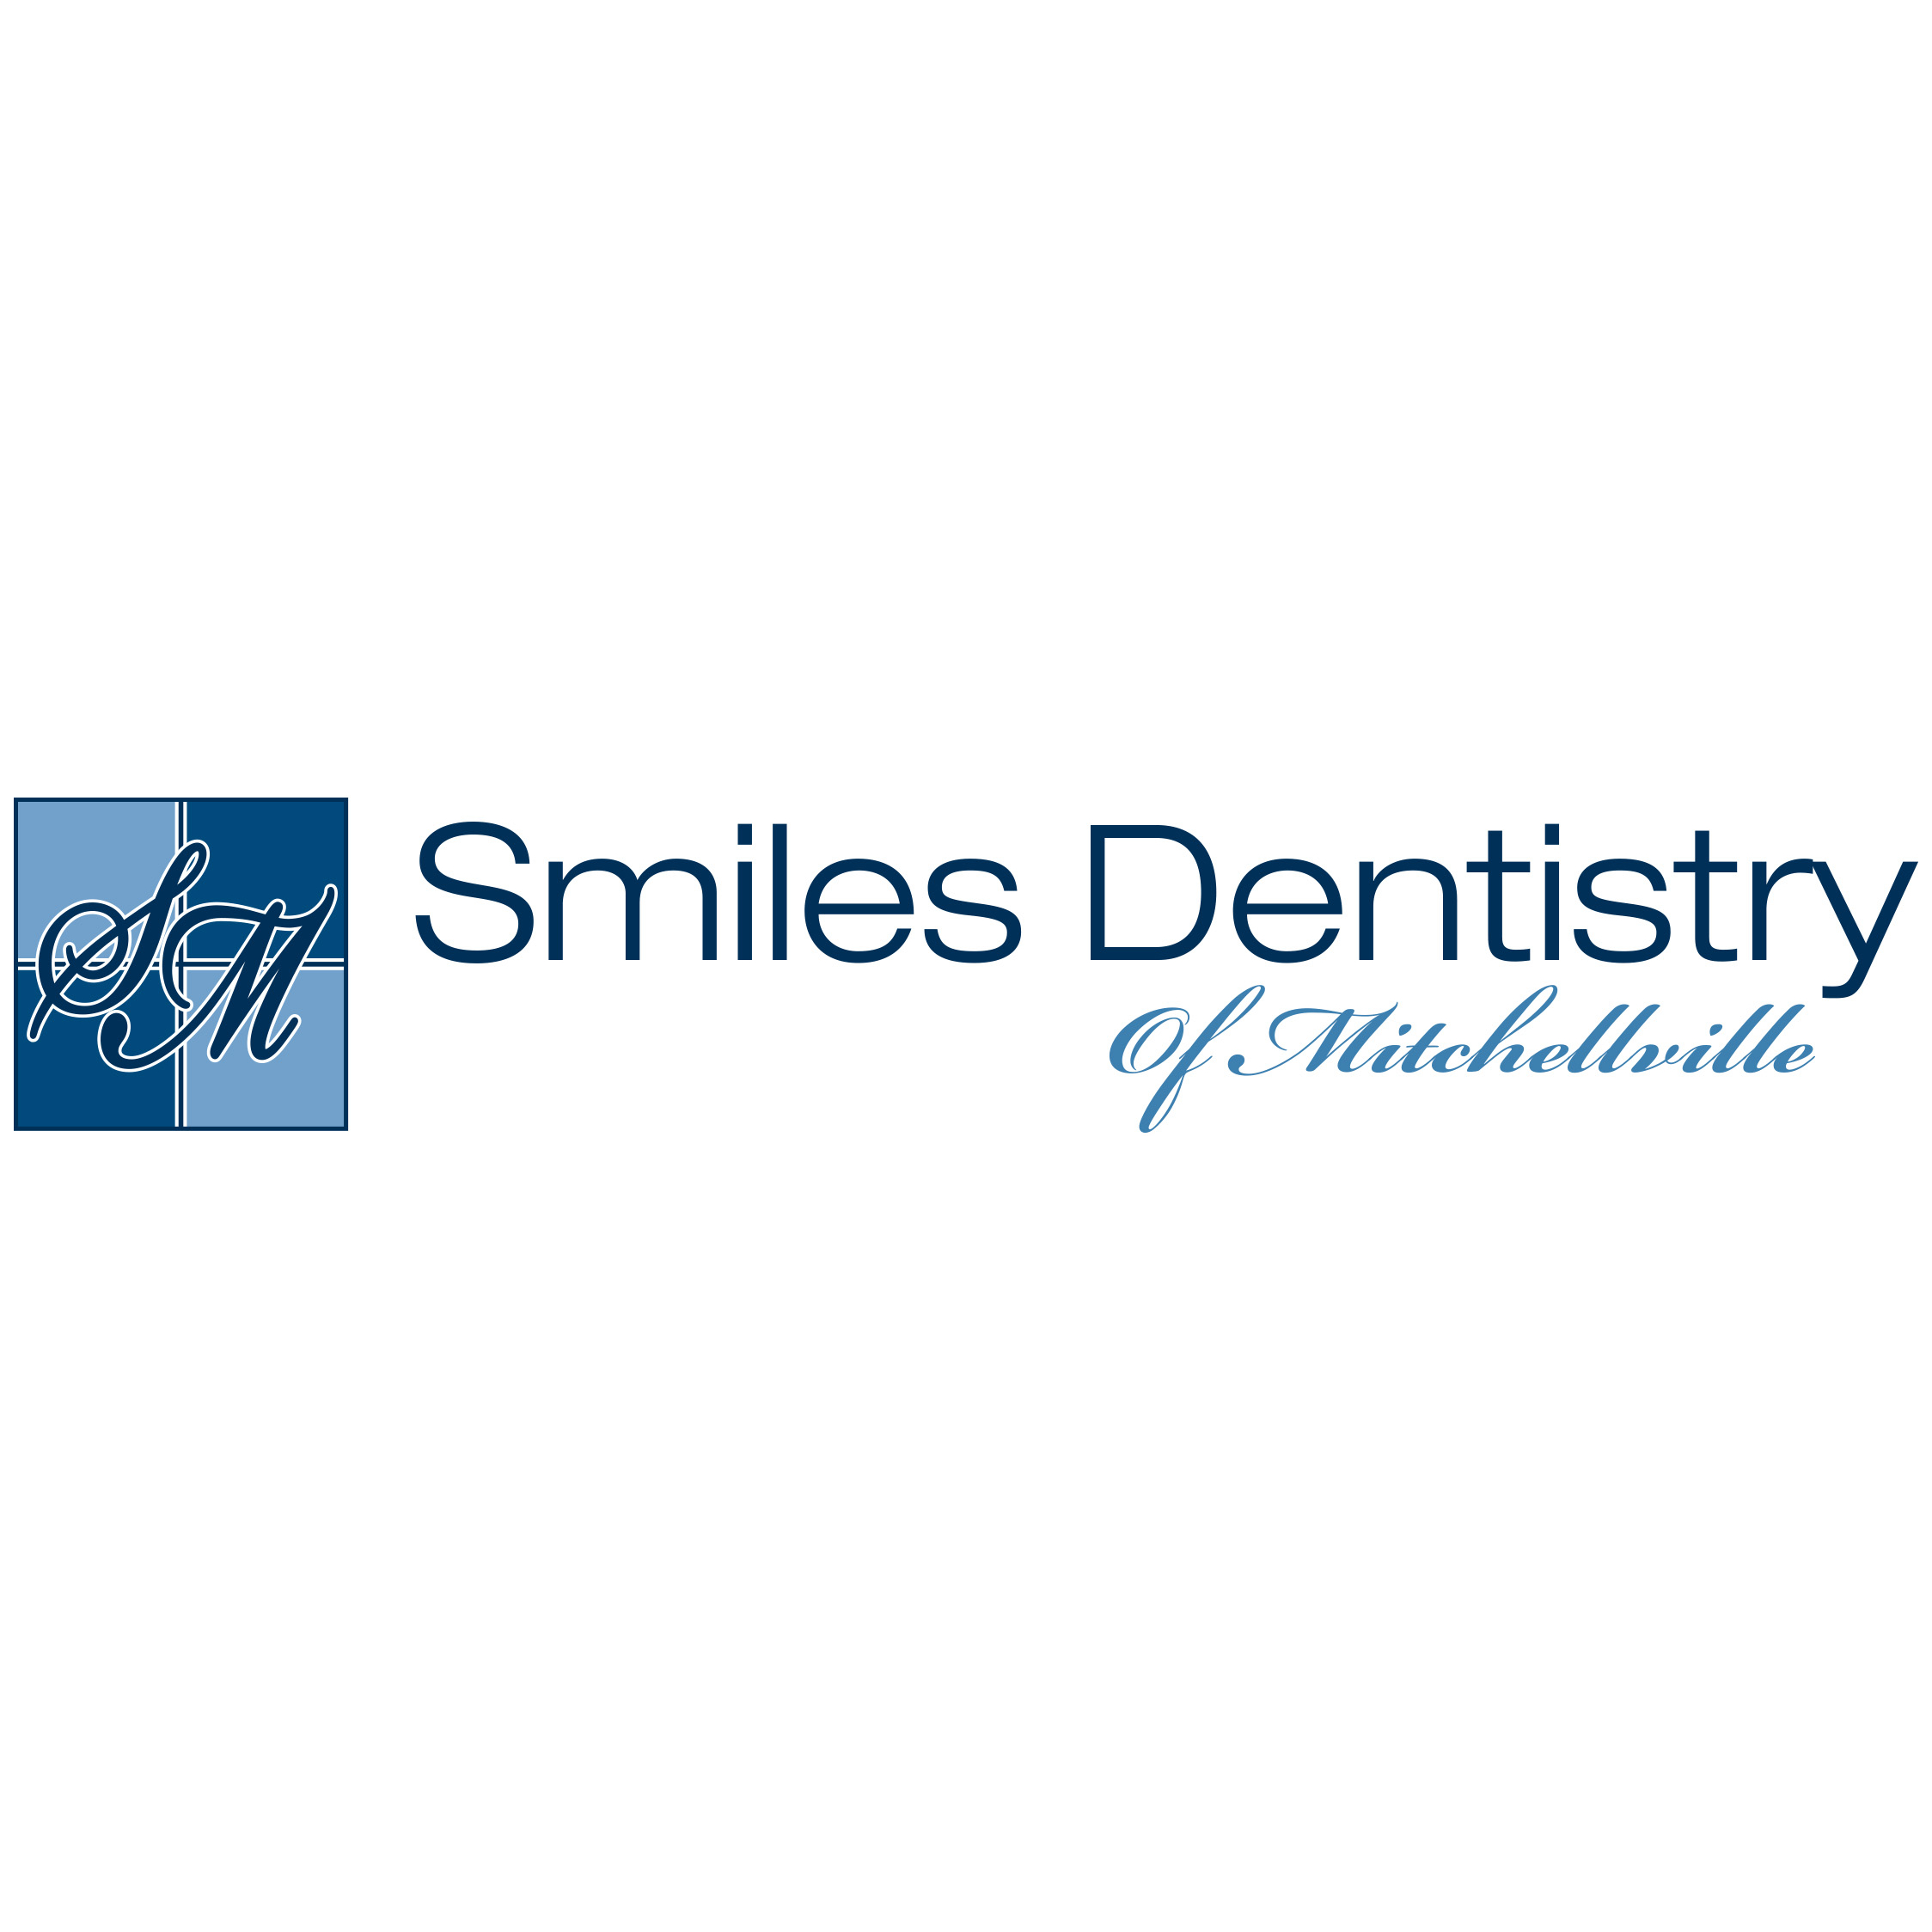 Smiles Dentistry of Mitchellville - Mitchellville, MD - Dentists & Dental Services